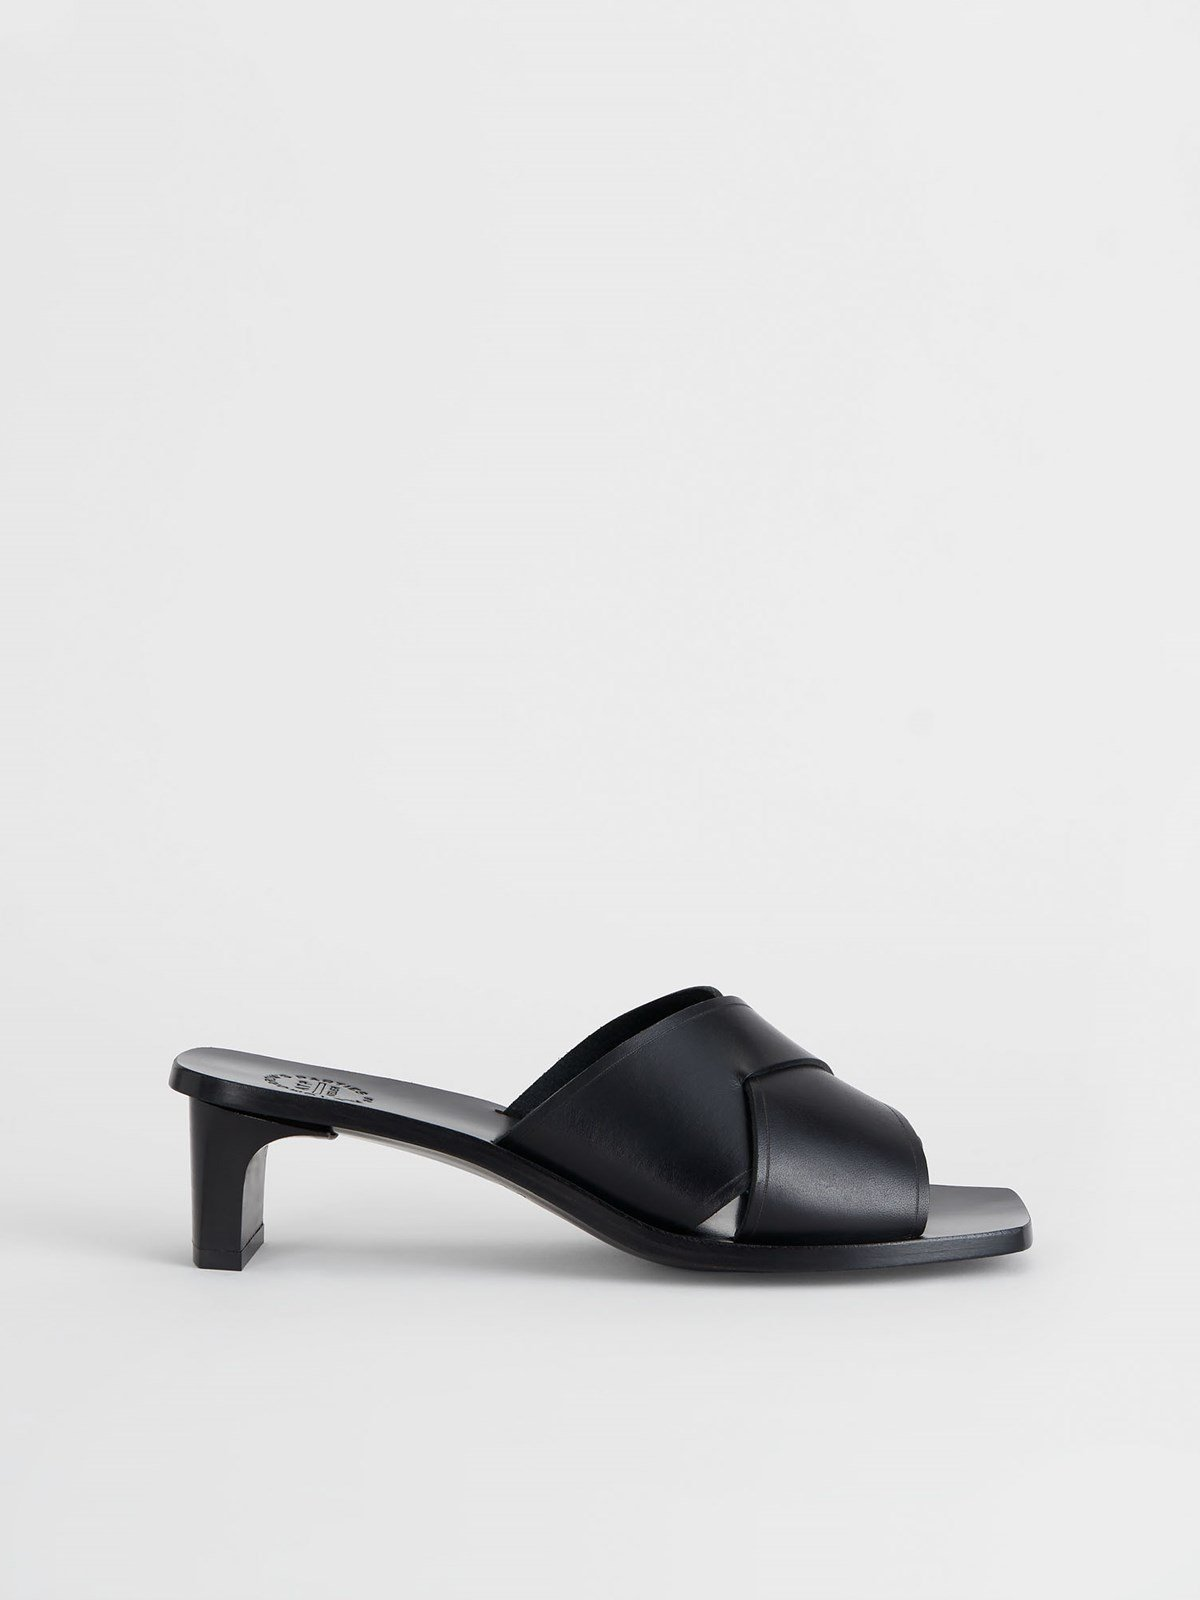 Stornarella Black Heeled sandals